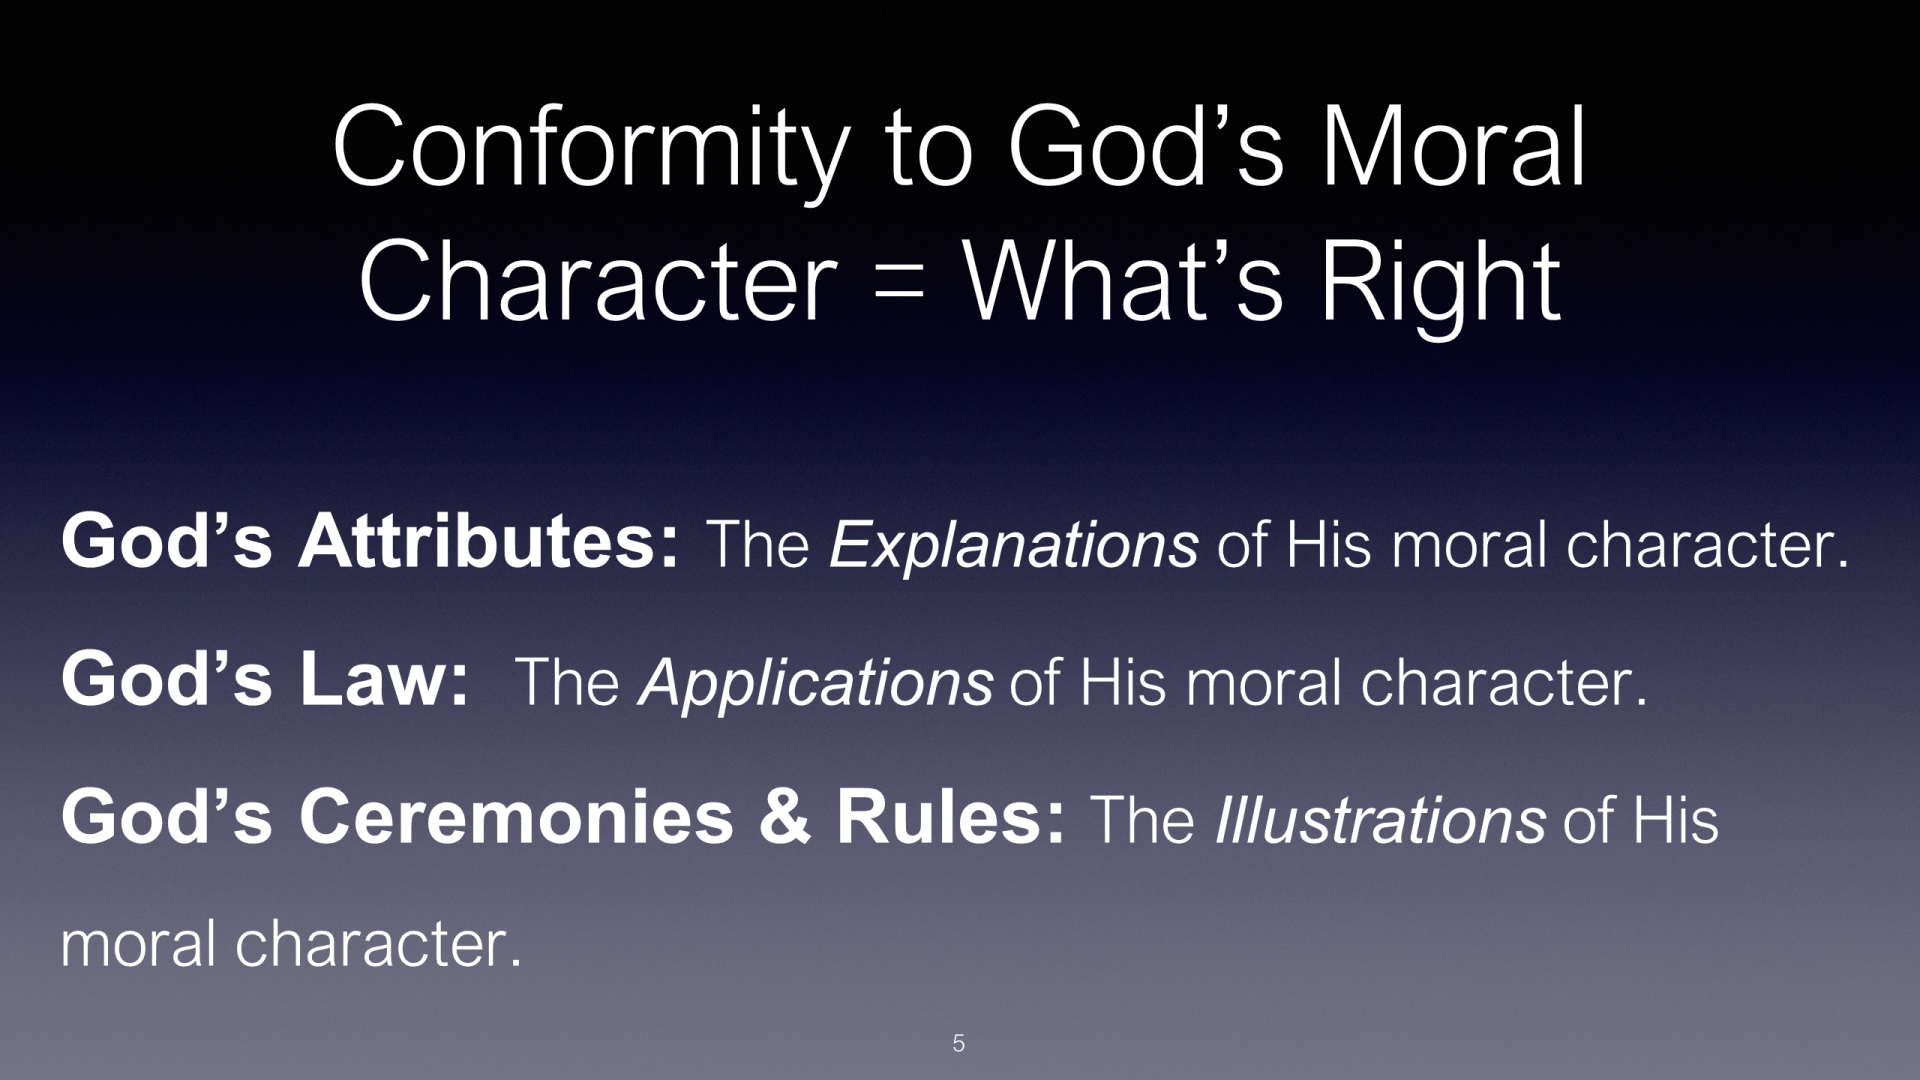 HFG-12 - Our God - Revelaled Through His Attributes, Reflected in His Law, and Illustrated by His Ceremonies (5)